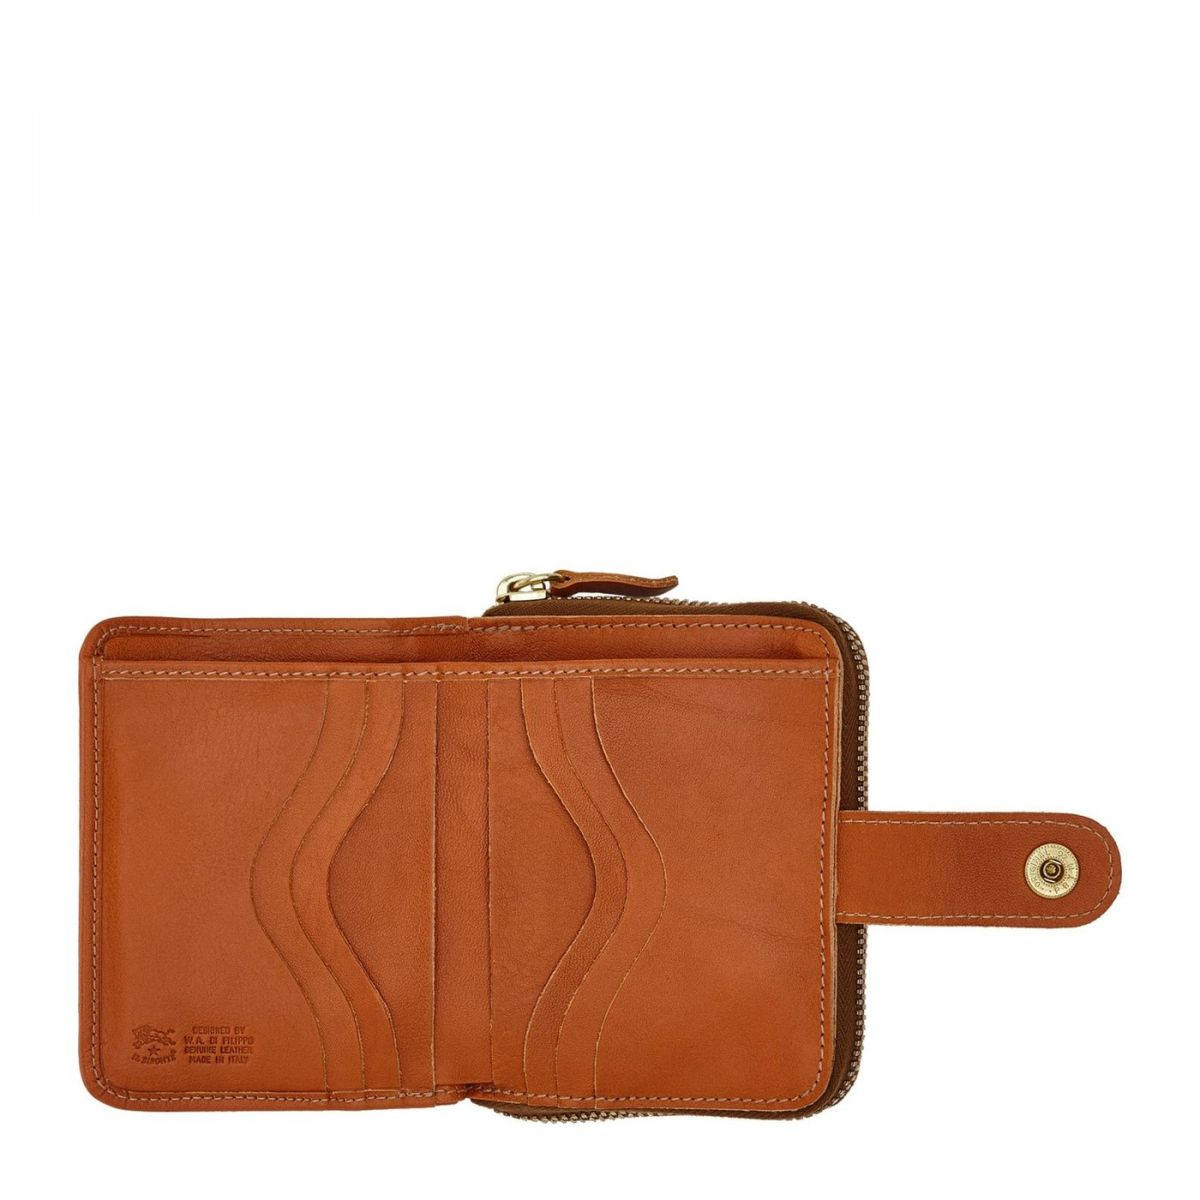 Women's Wallet  in Cowhide Leather SMW067 color Caramel | Details